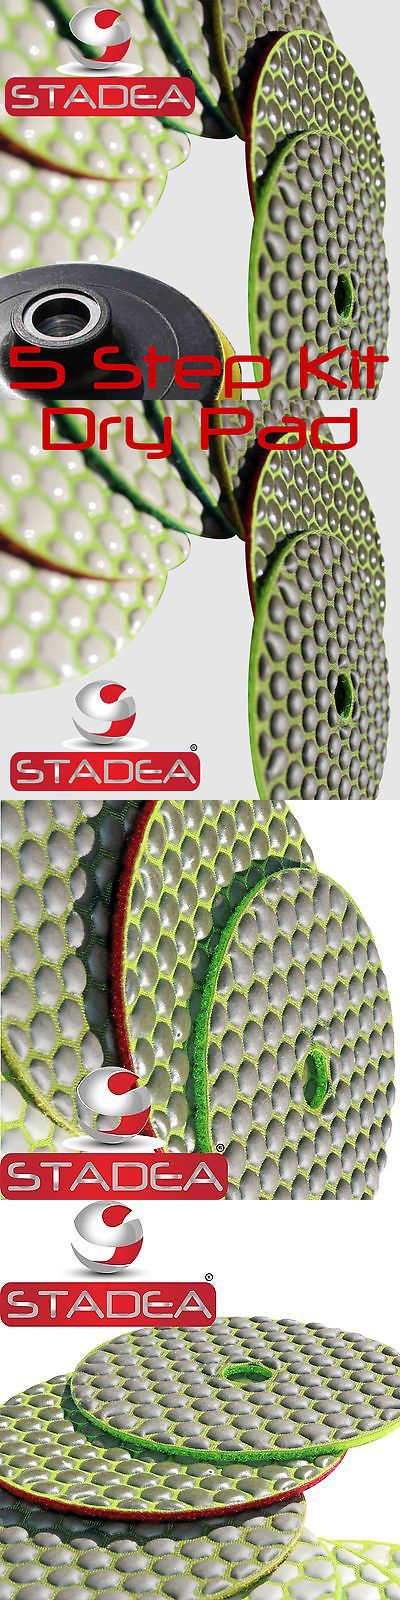 materials: Stadea 4 Diamond Dry Concrete Stone Marble Granite Polishing Pads Kit Discs Set -> BUY IT NOW ONLY: $33.99 on eBay!